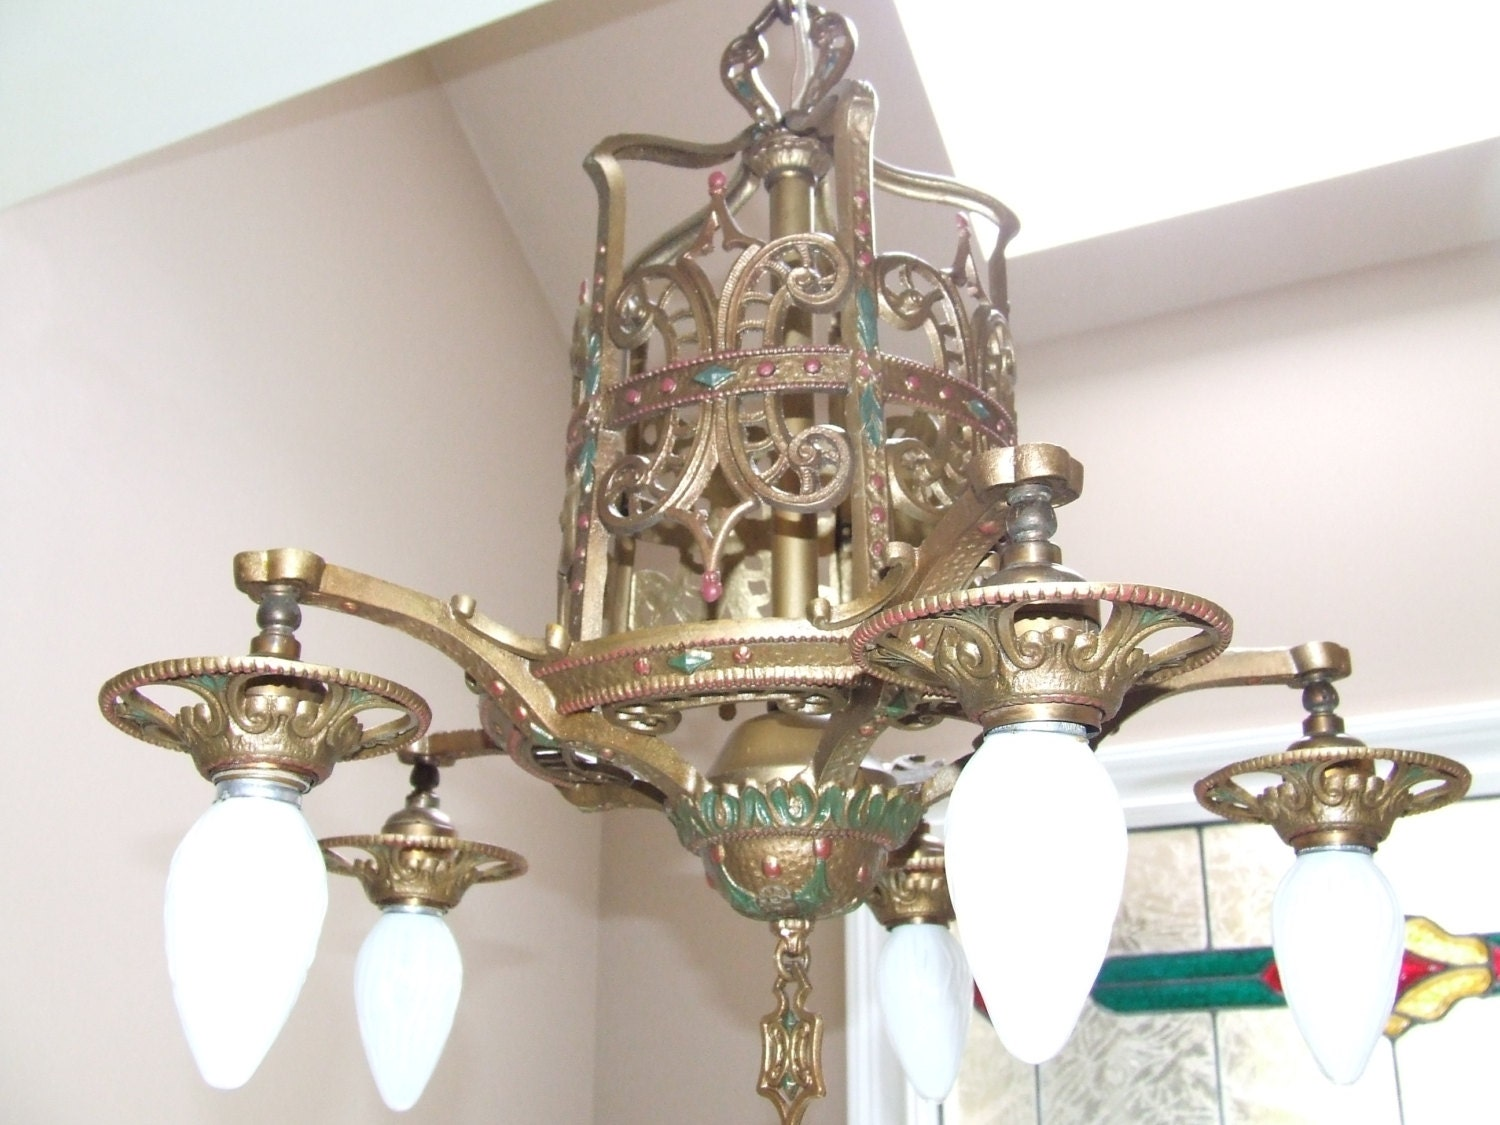 Antique Vintage Spanish Revival 5 Light By Retrodelights1